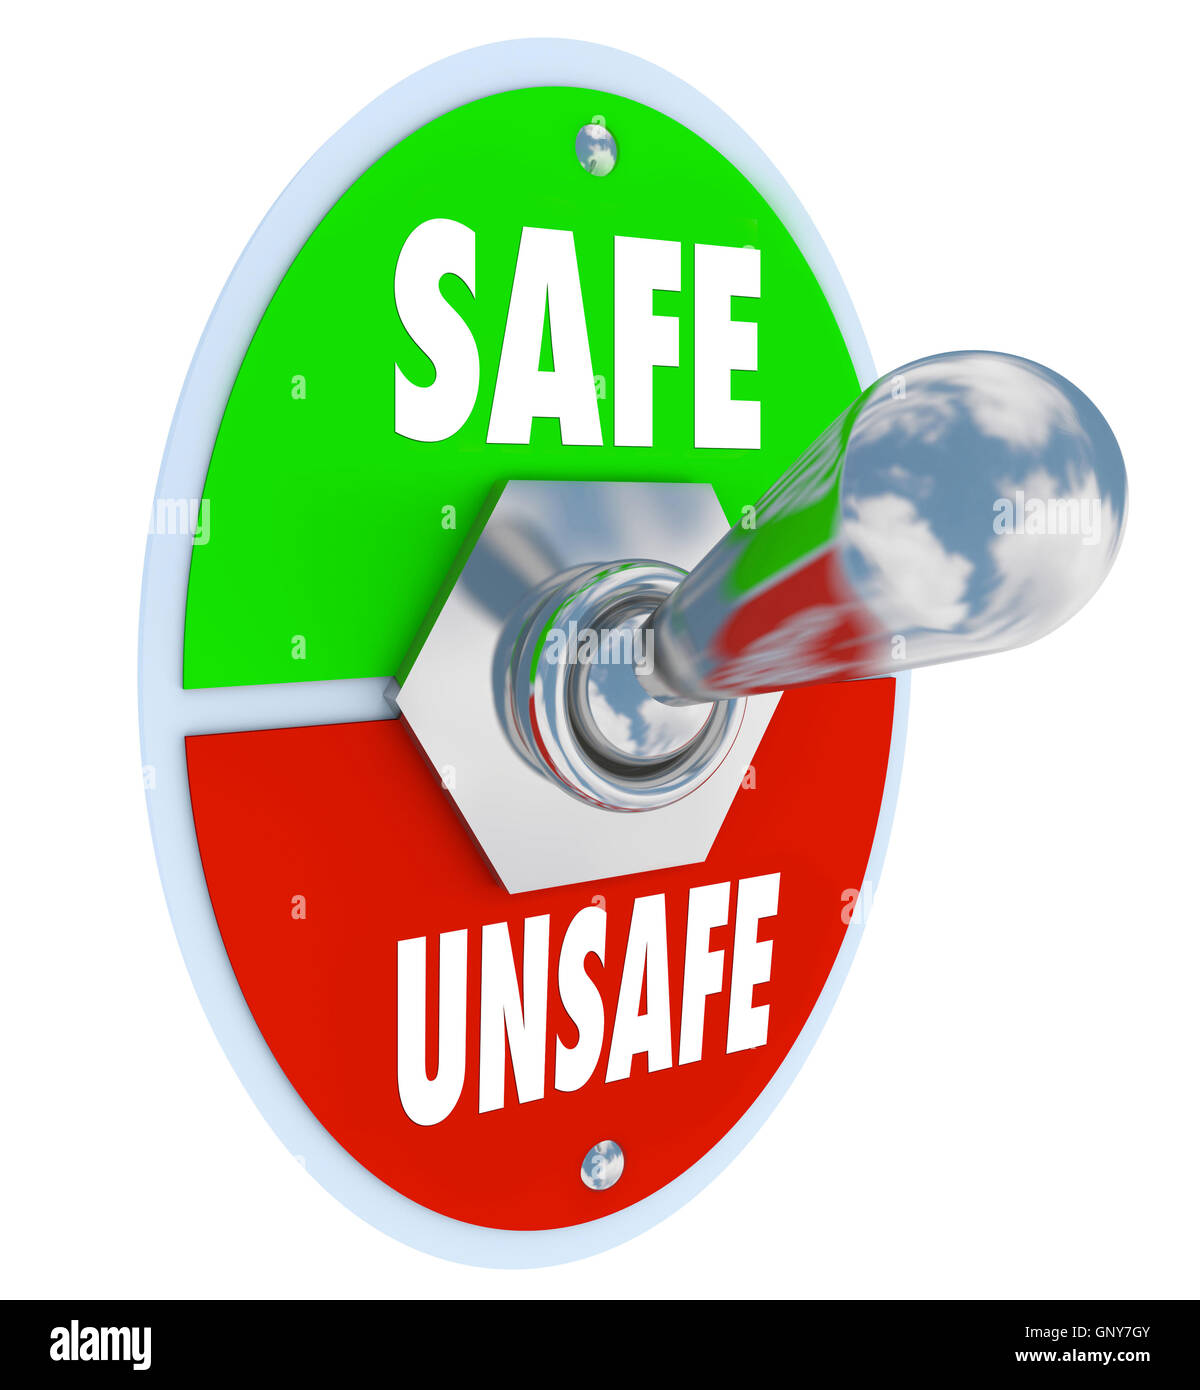 Safe or Unsafe Toggle Switch Choose Safety vs Danger - Stock Image